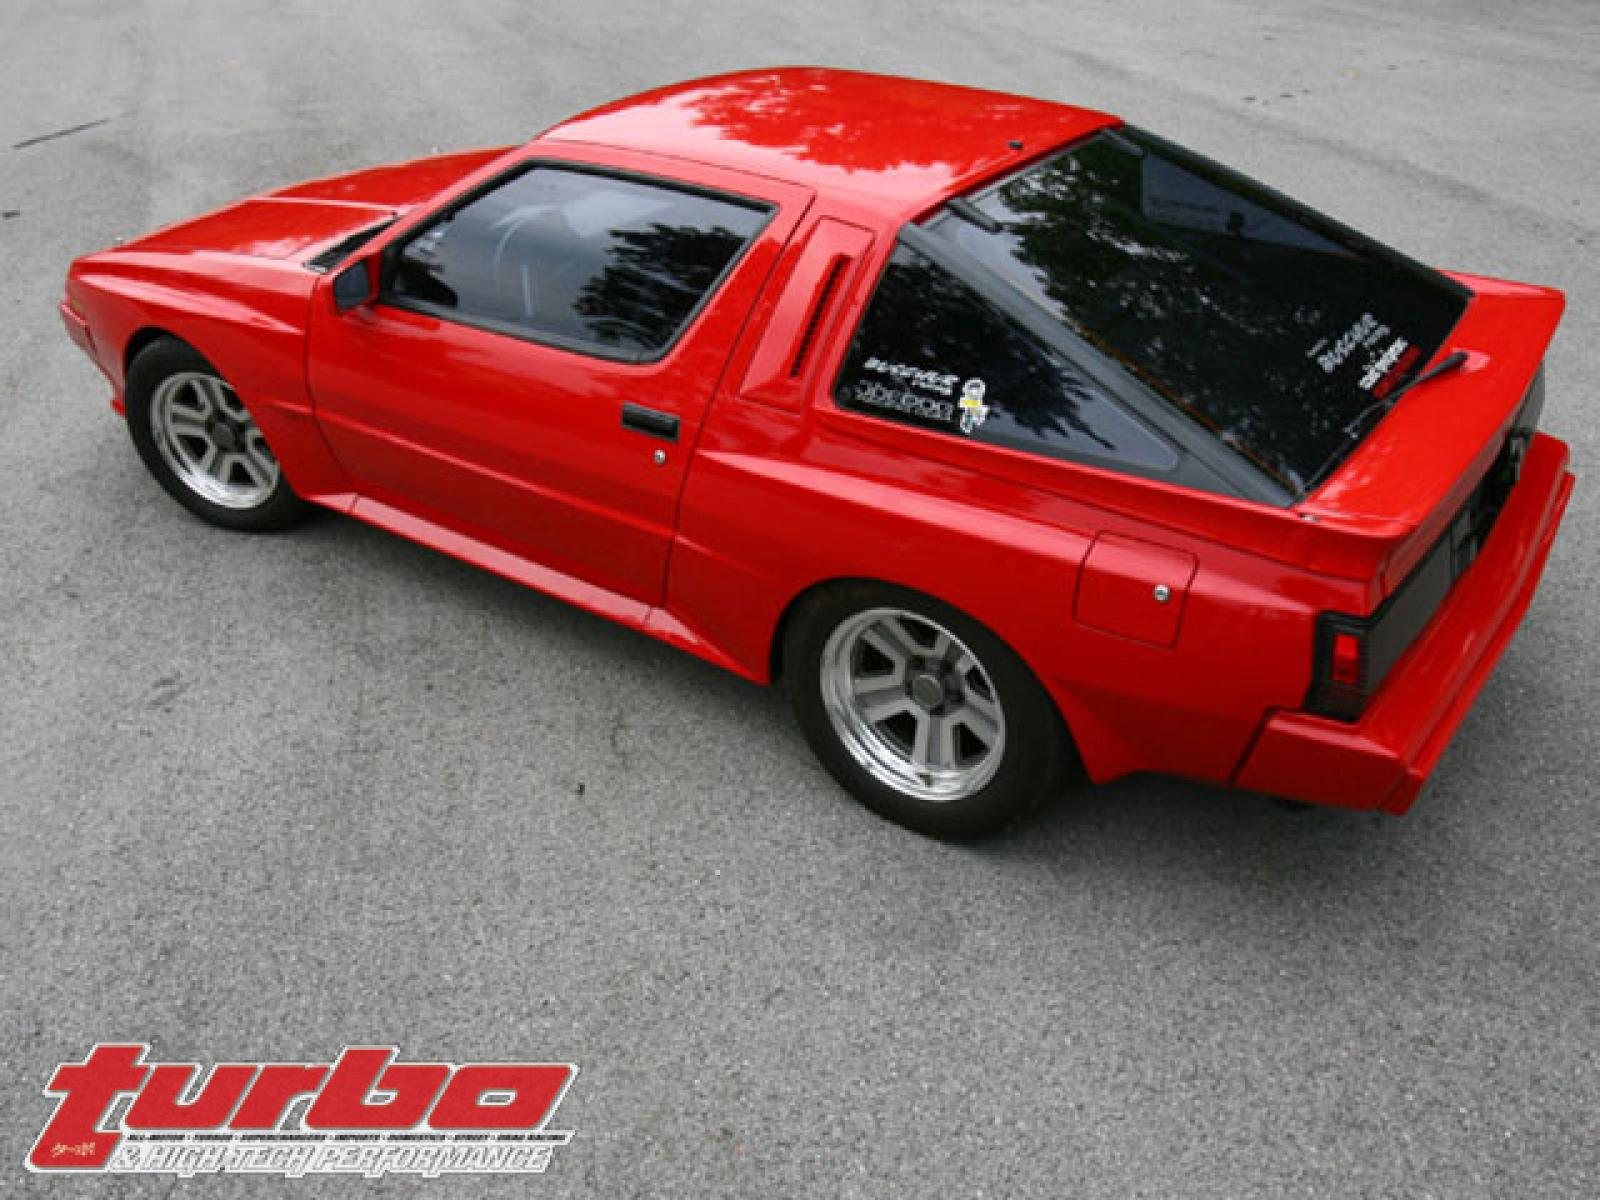 Dodge Conquest Built To Be A Conqueror 1600px Image 2 Mitsubishi Starion